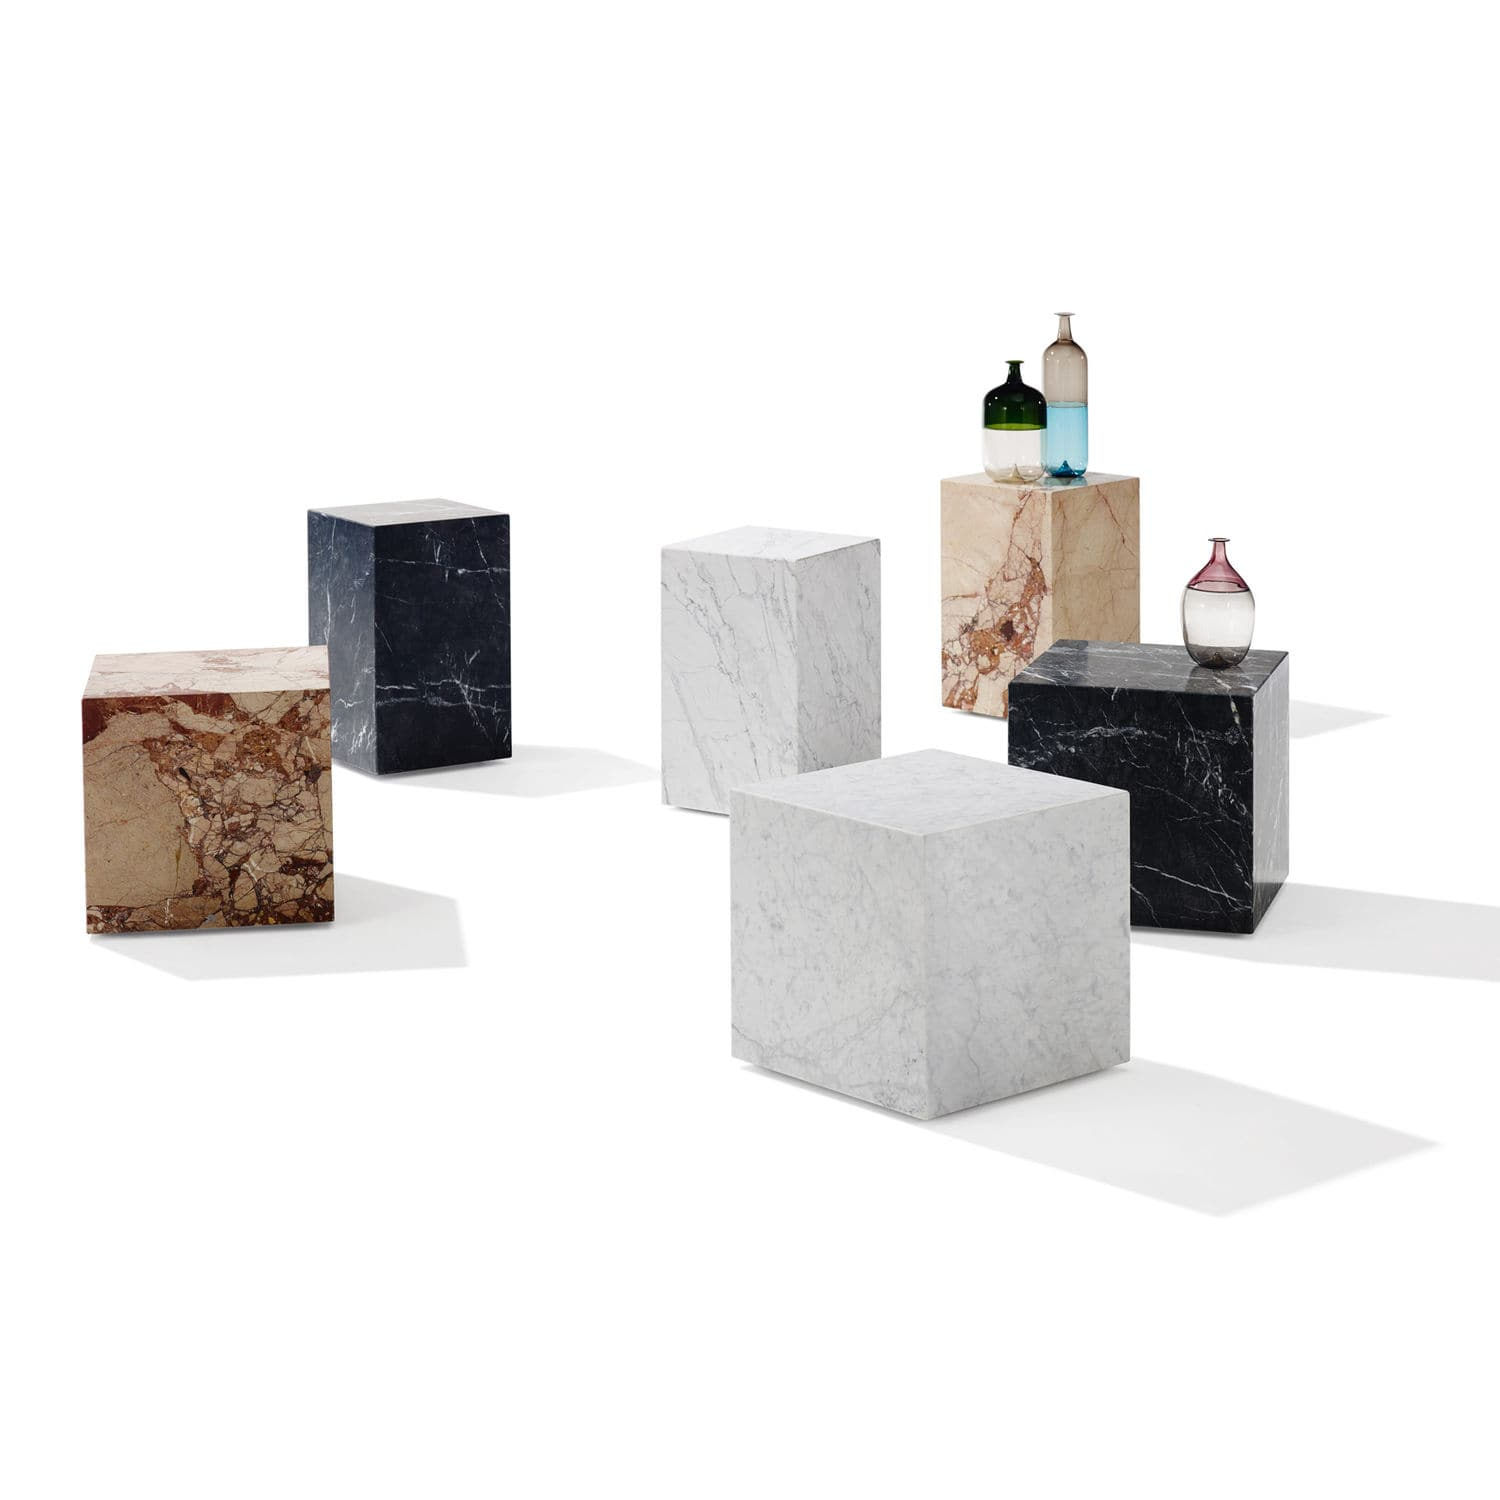 Contemporary Side Table 1365 Qbic Draenert Natural Stone Cube Shaped